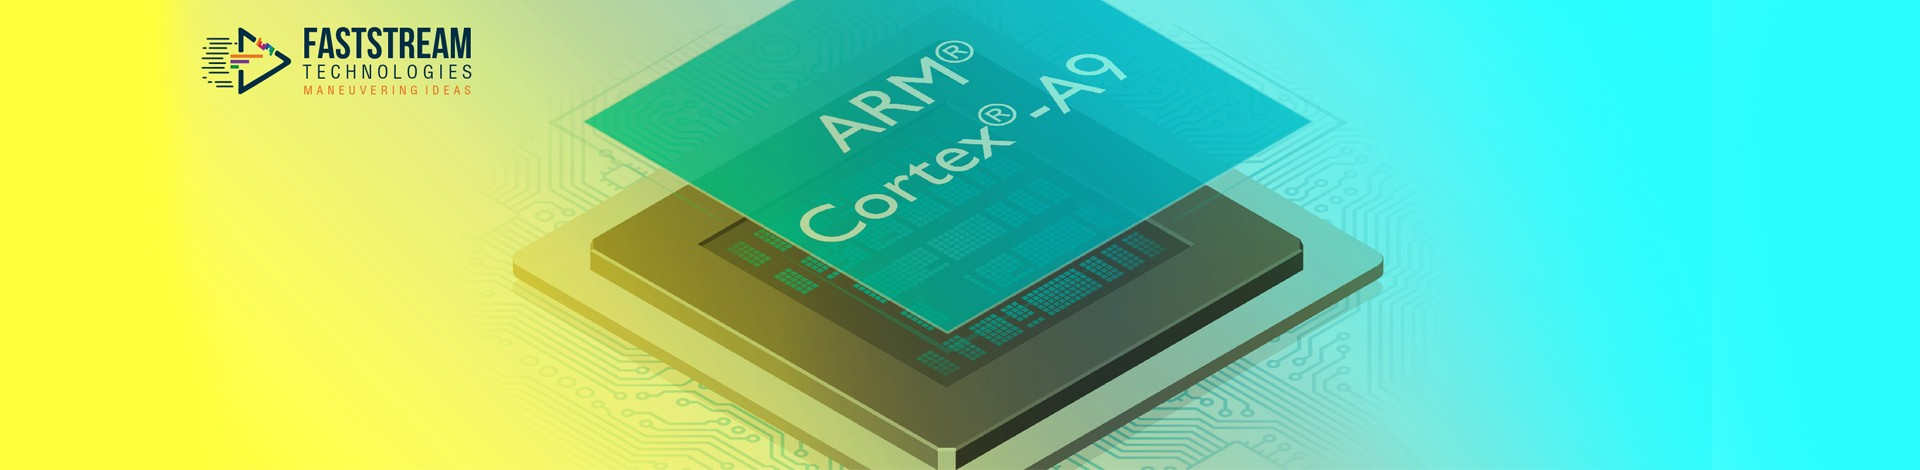 ARM ® Cortex™- A9 architecture